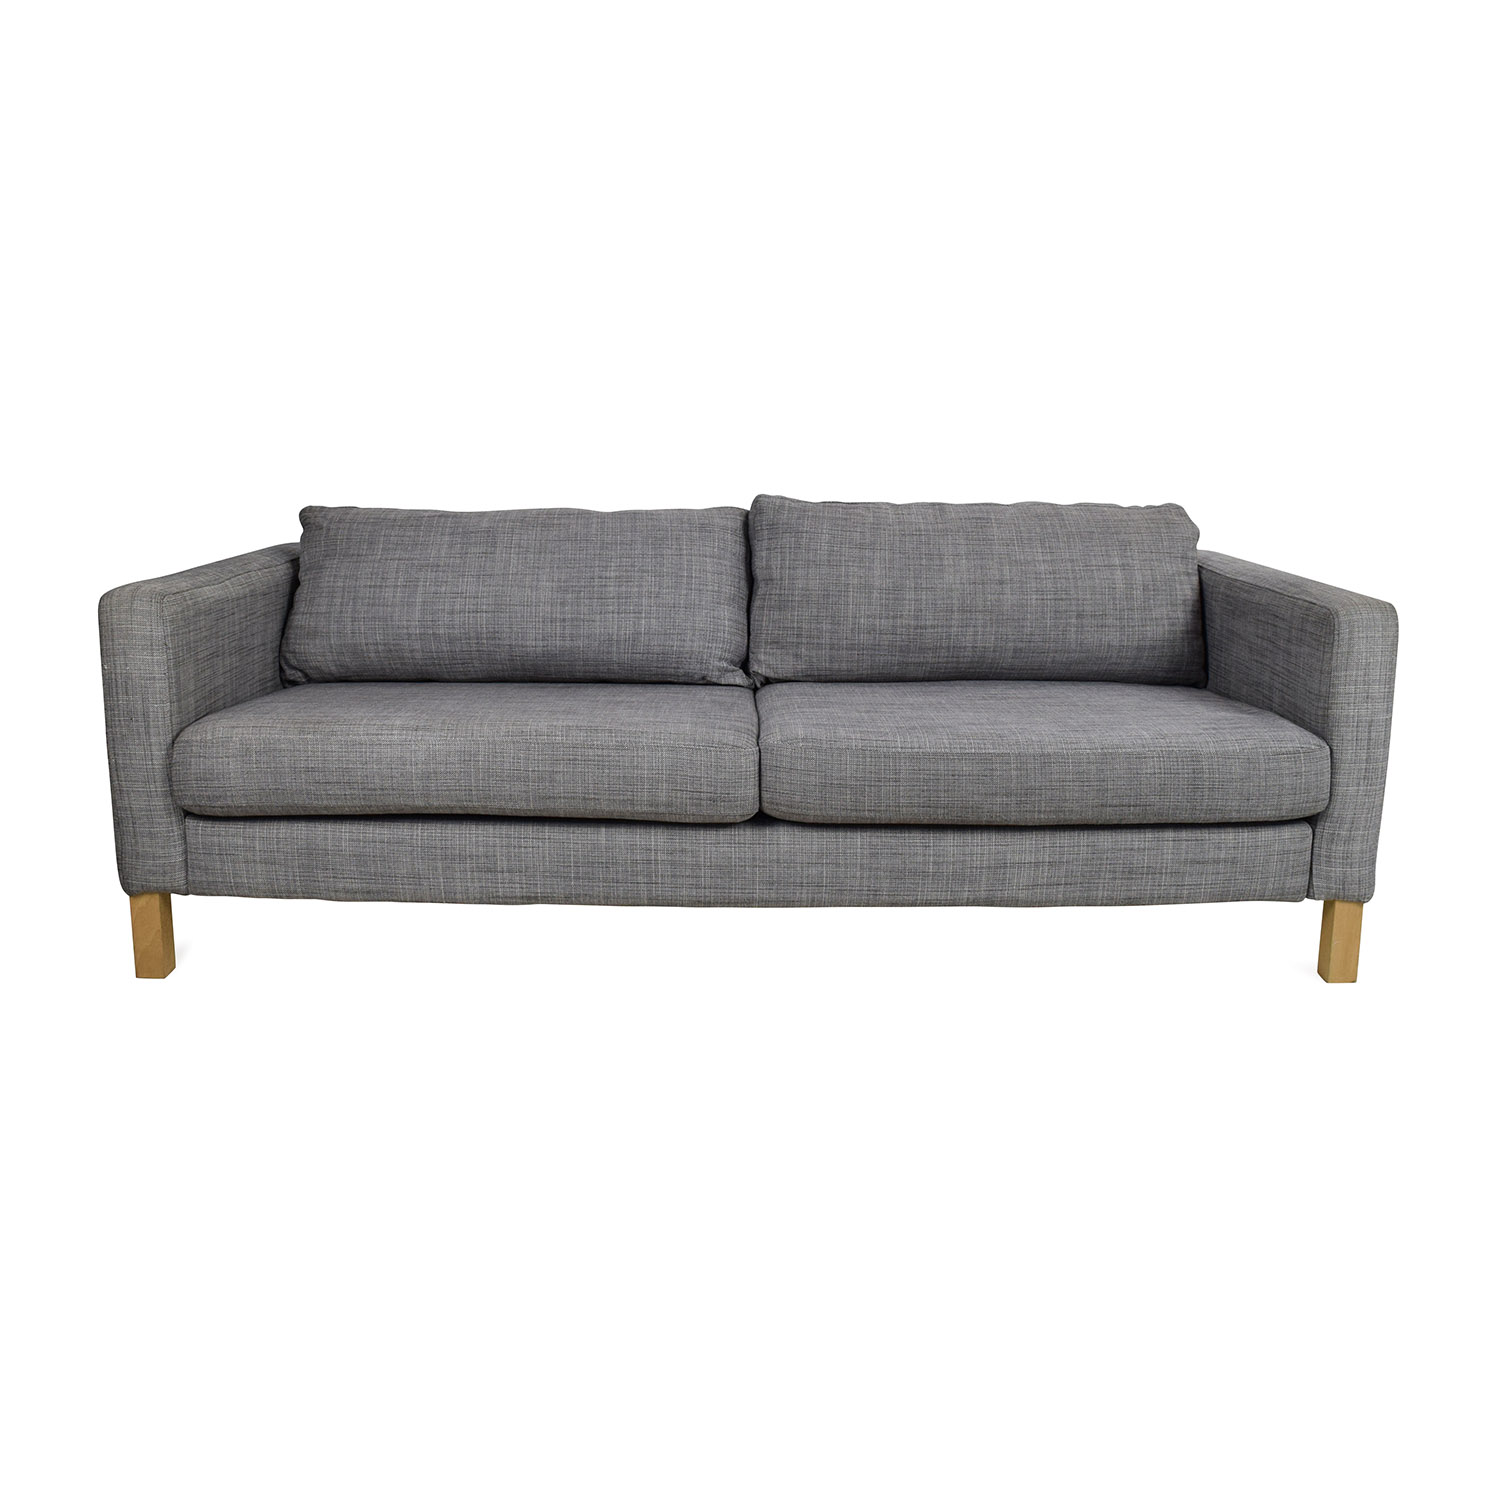 Sofas with price prices of sofa sets best upnguohdl for Average cost of sofa